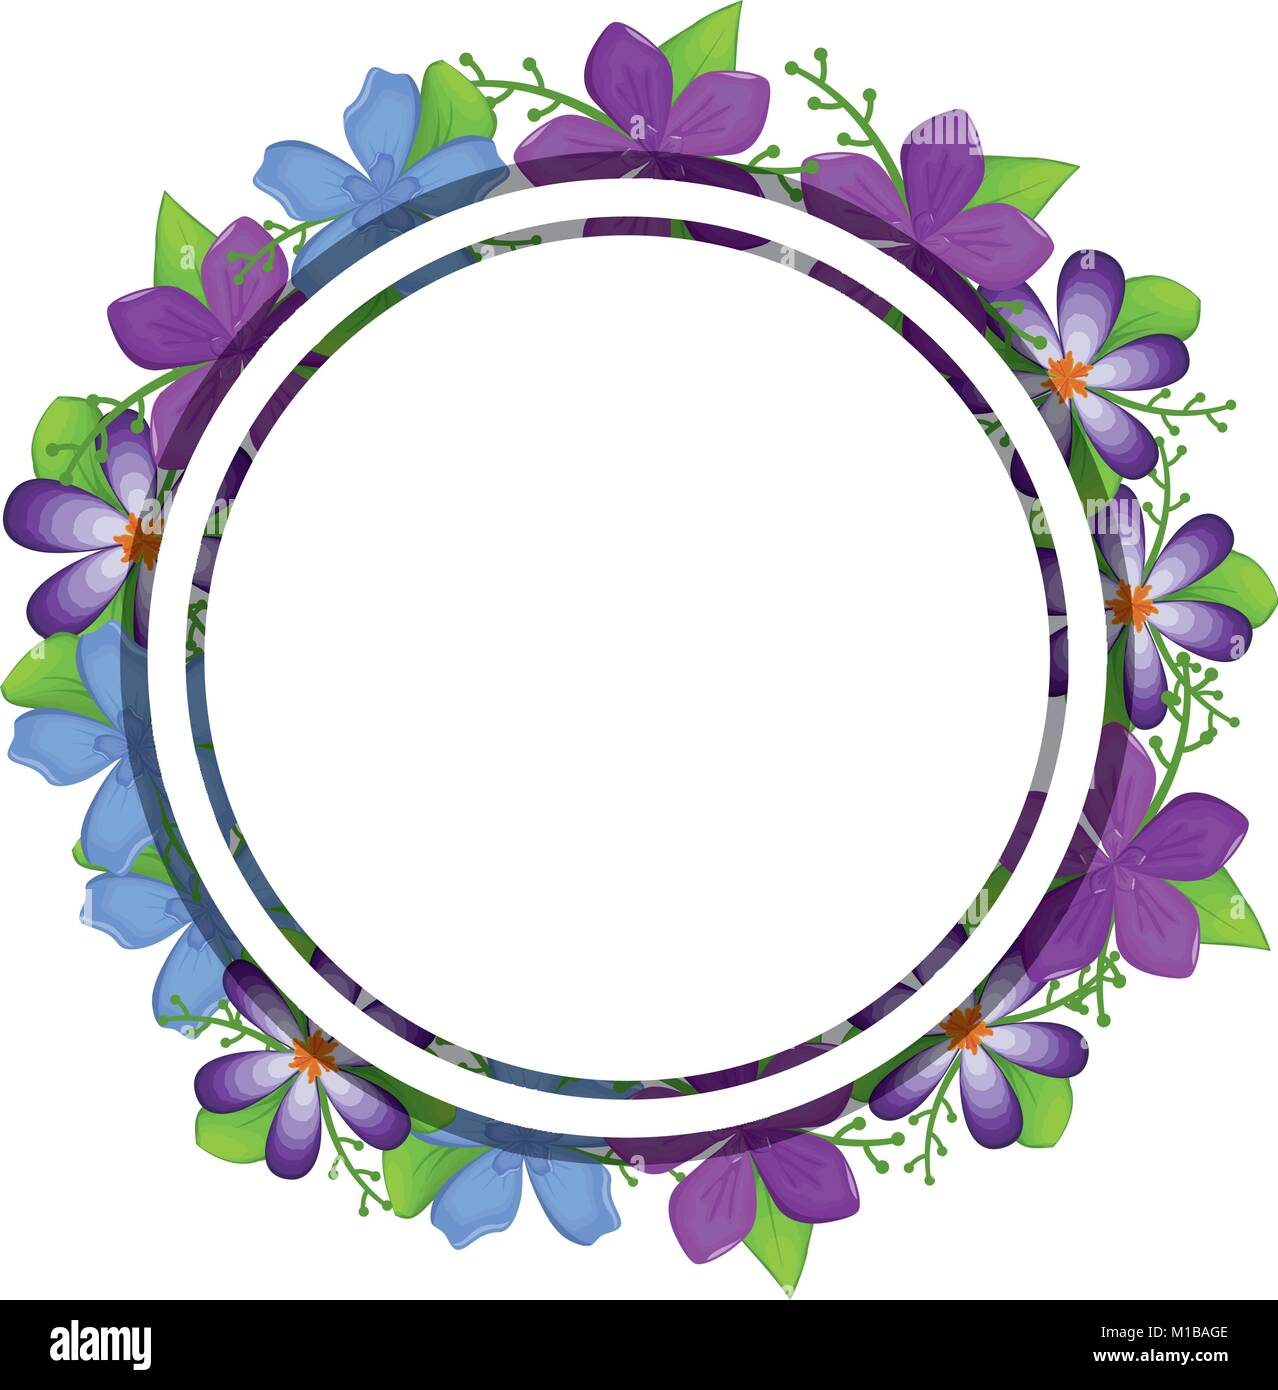 Floral Round Border Stock Photos Images